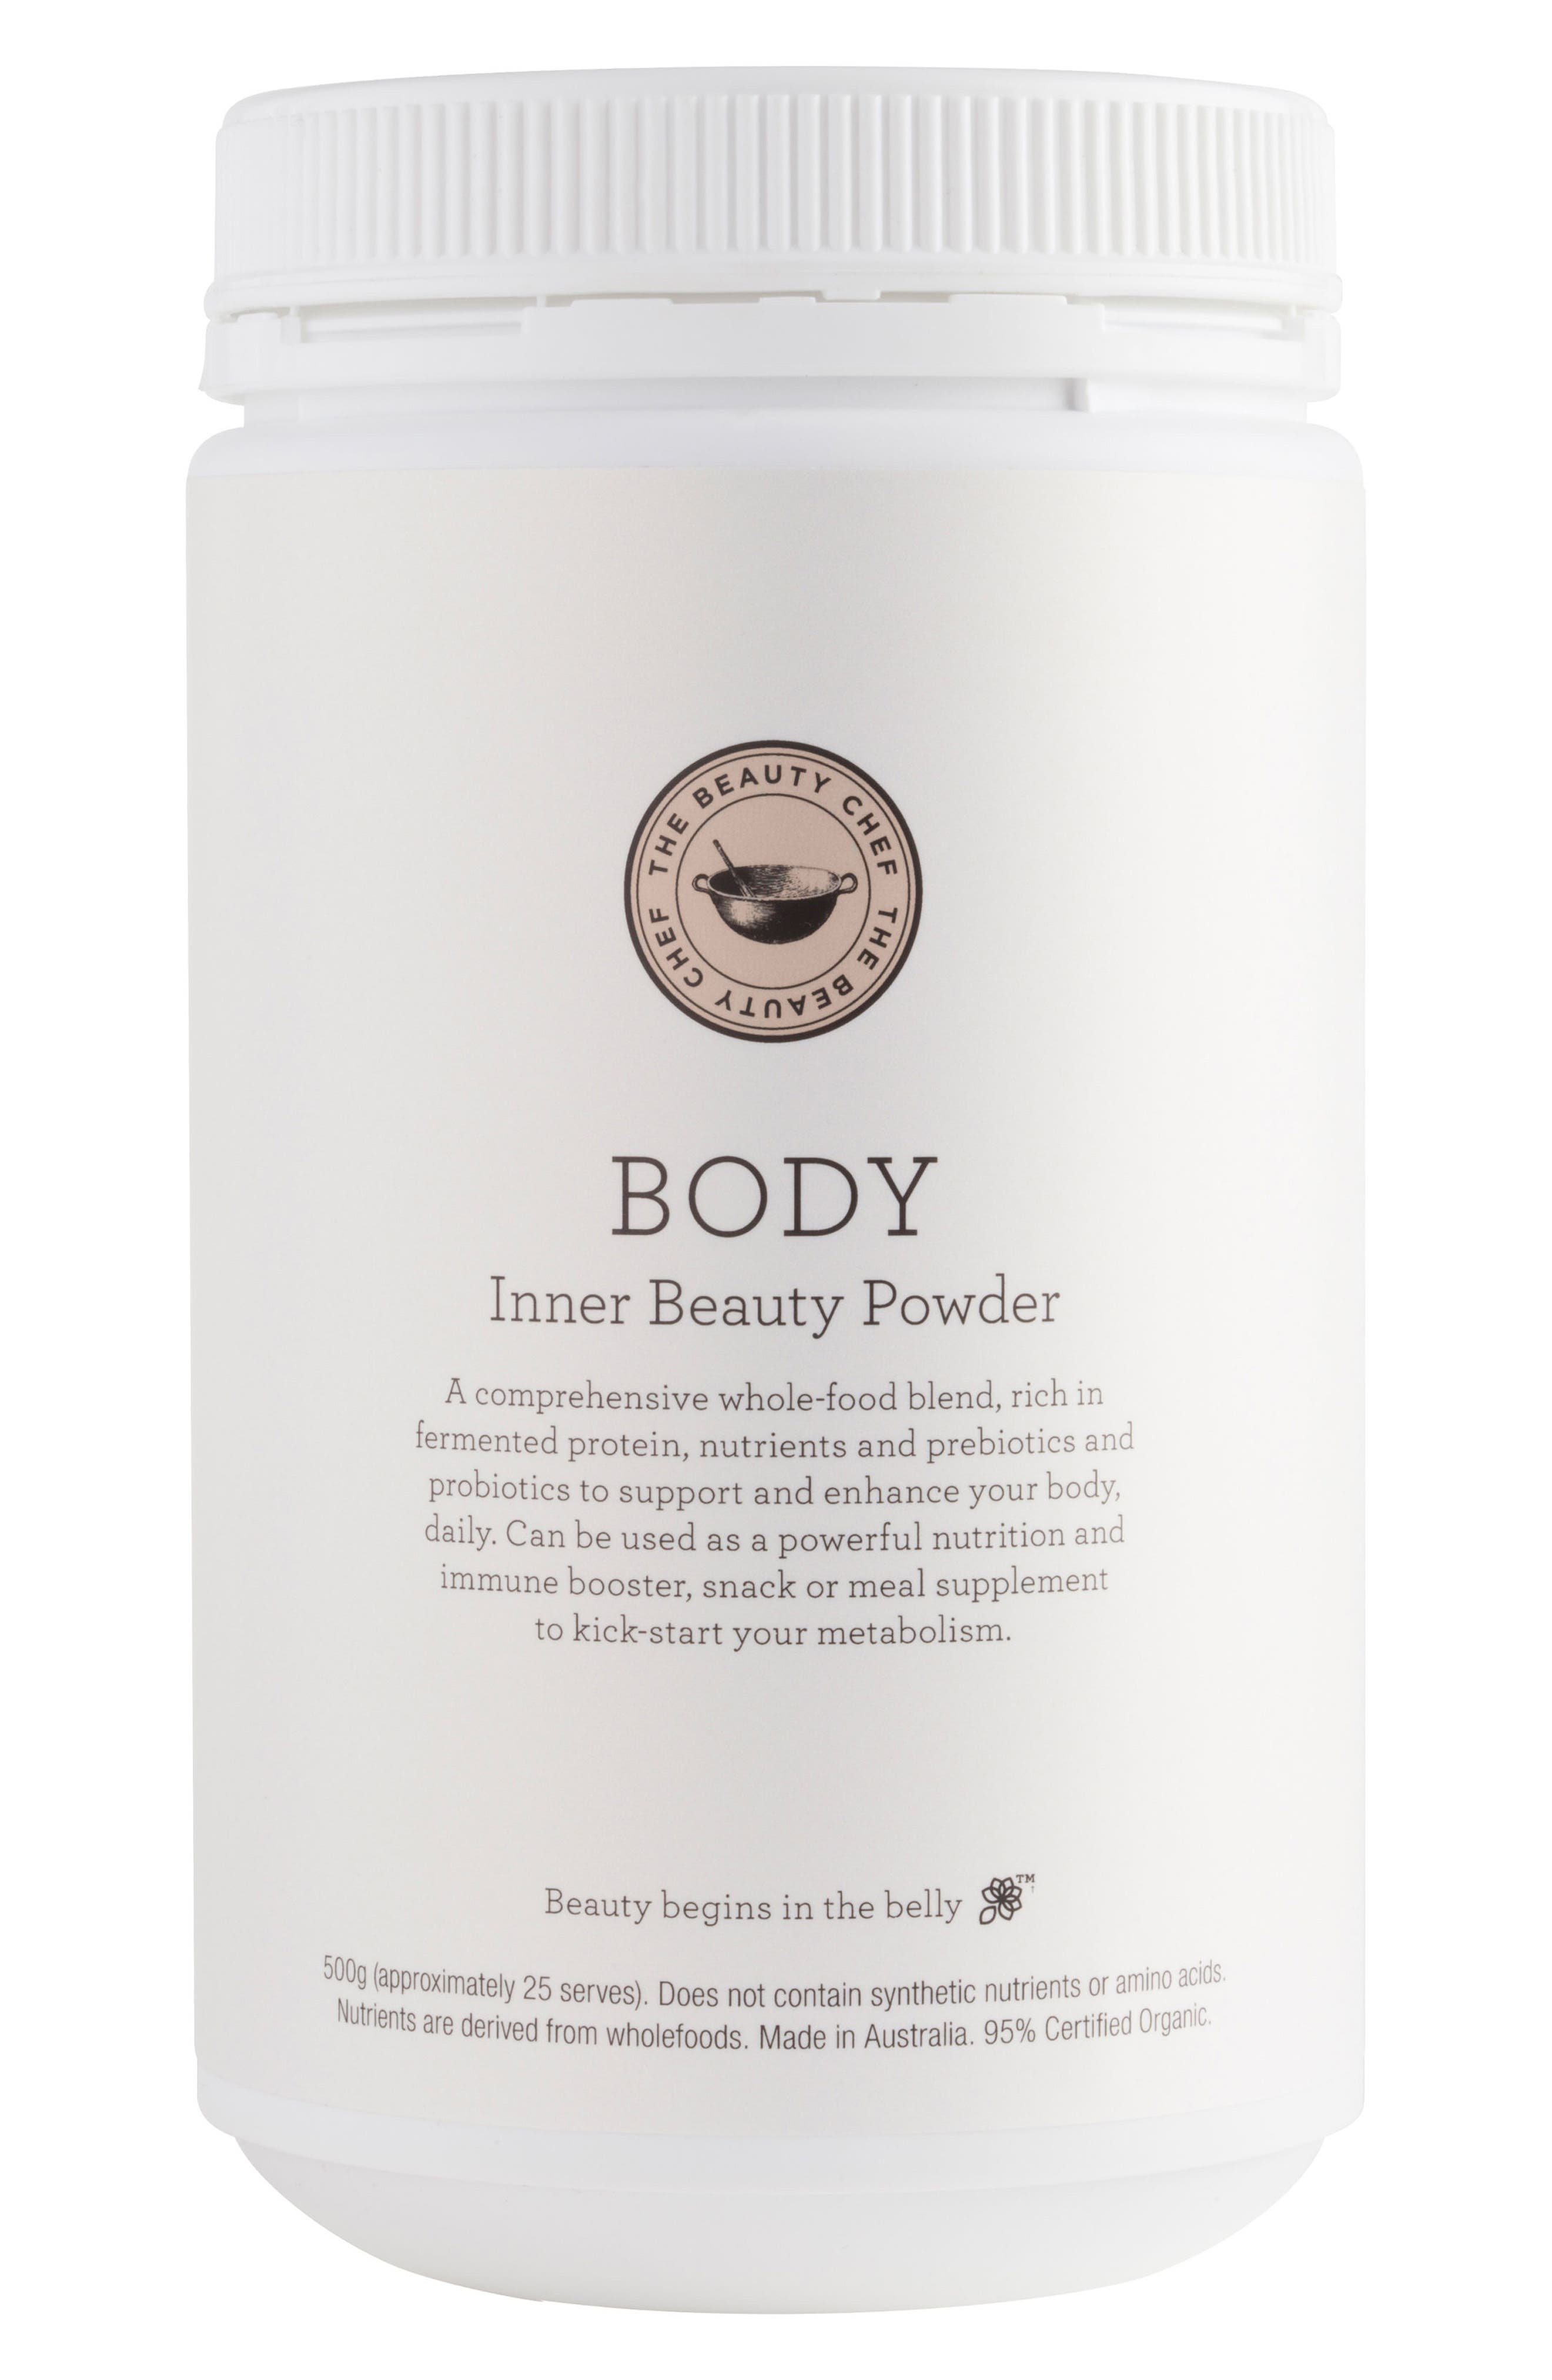 Alternate Image 1 Selected - The Beauty Chef Body Inner Beauty Powder with Matcha